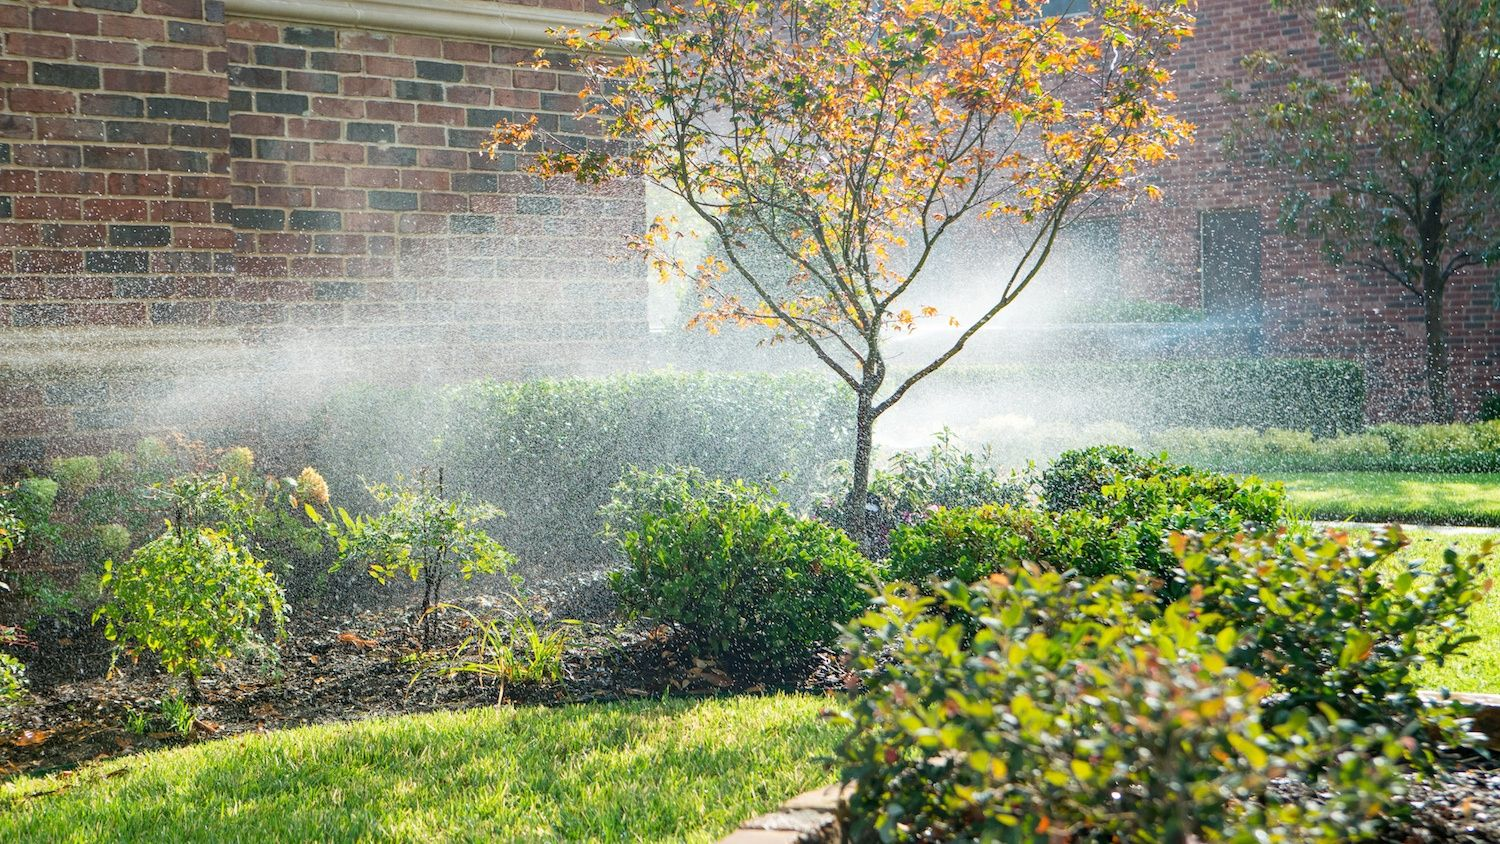 irrigation watering a lawn, shrubs, trees, and perennials